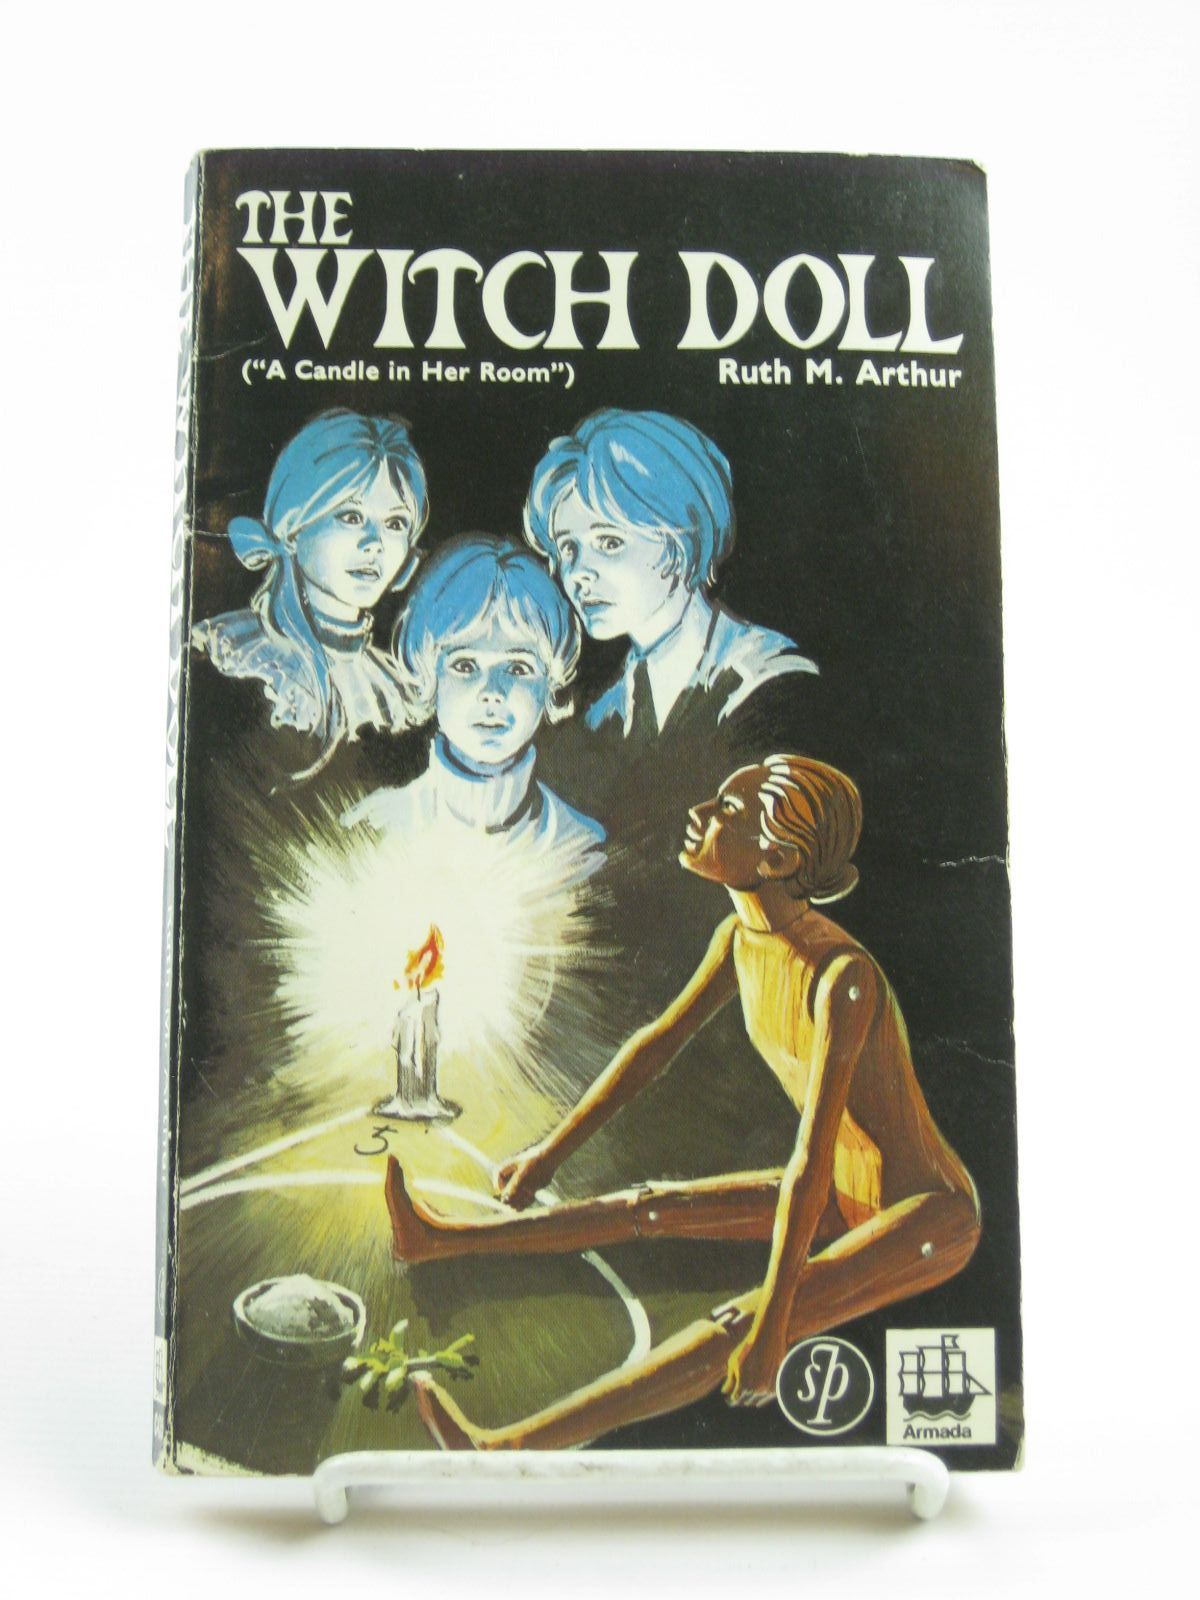 The Witch Doll